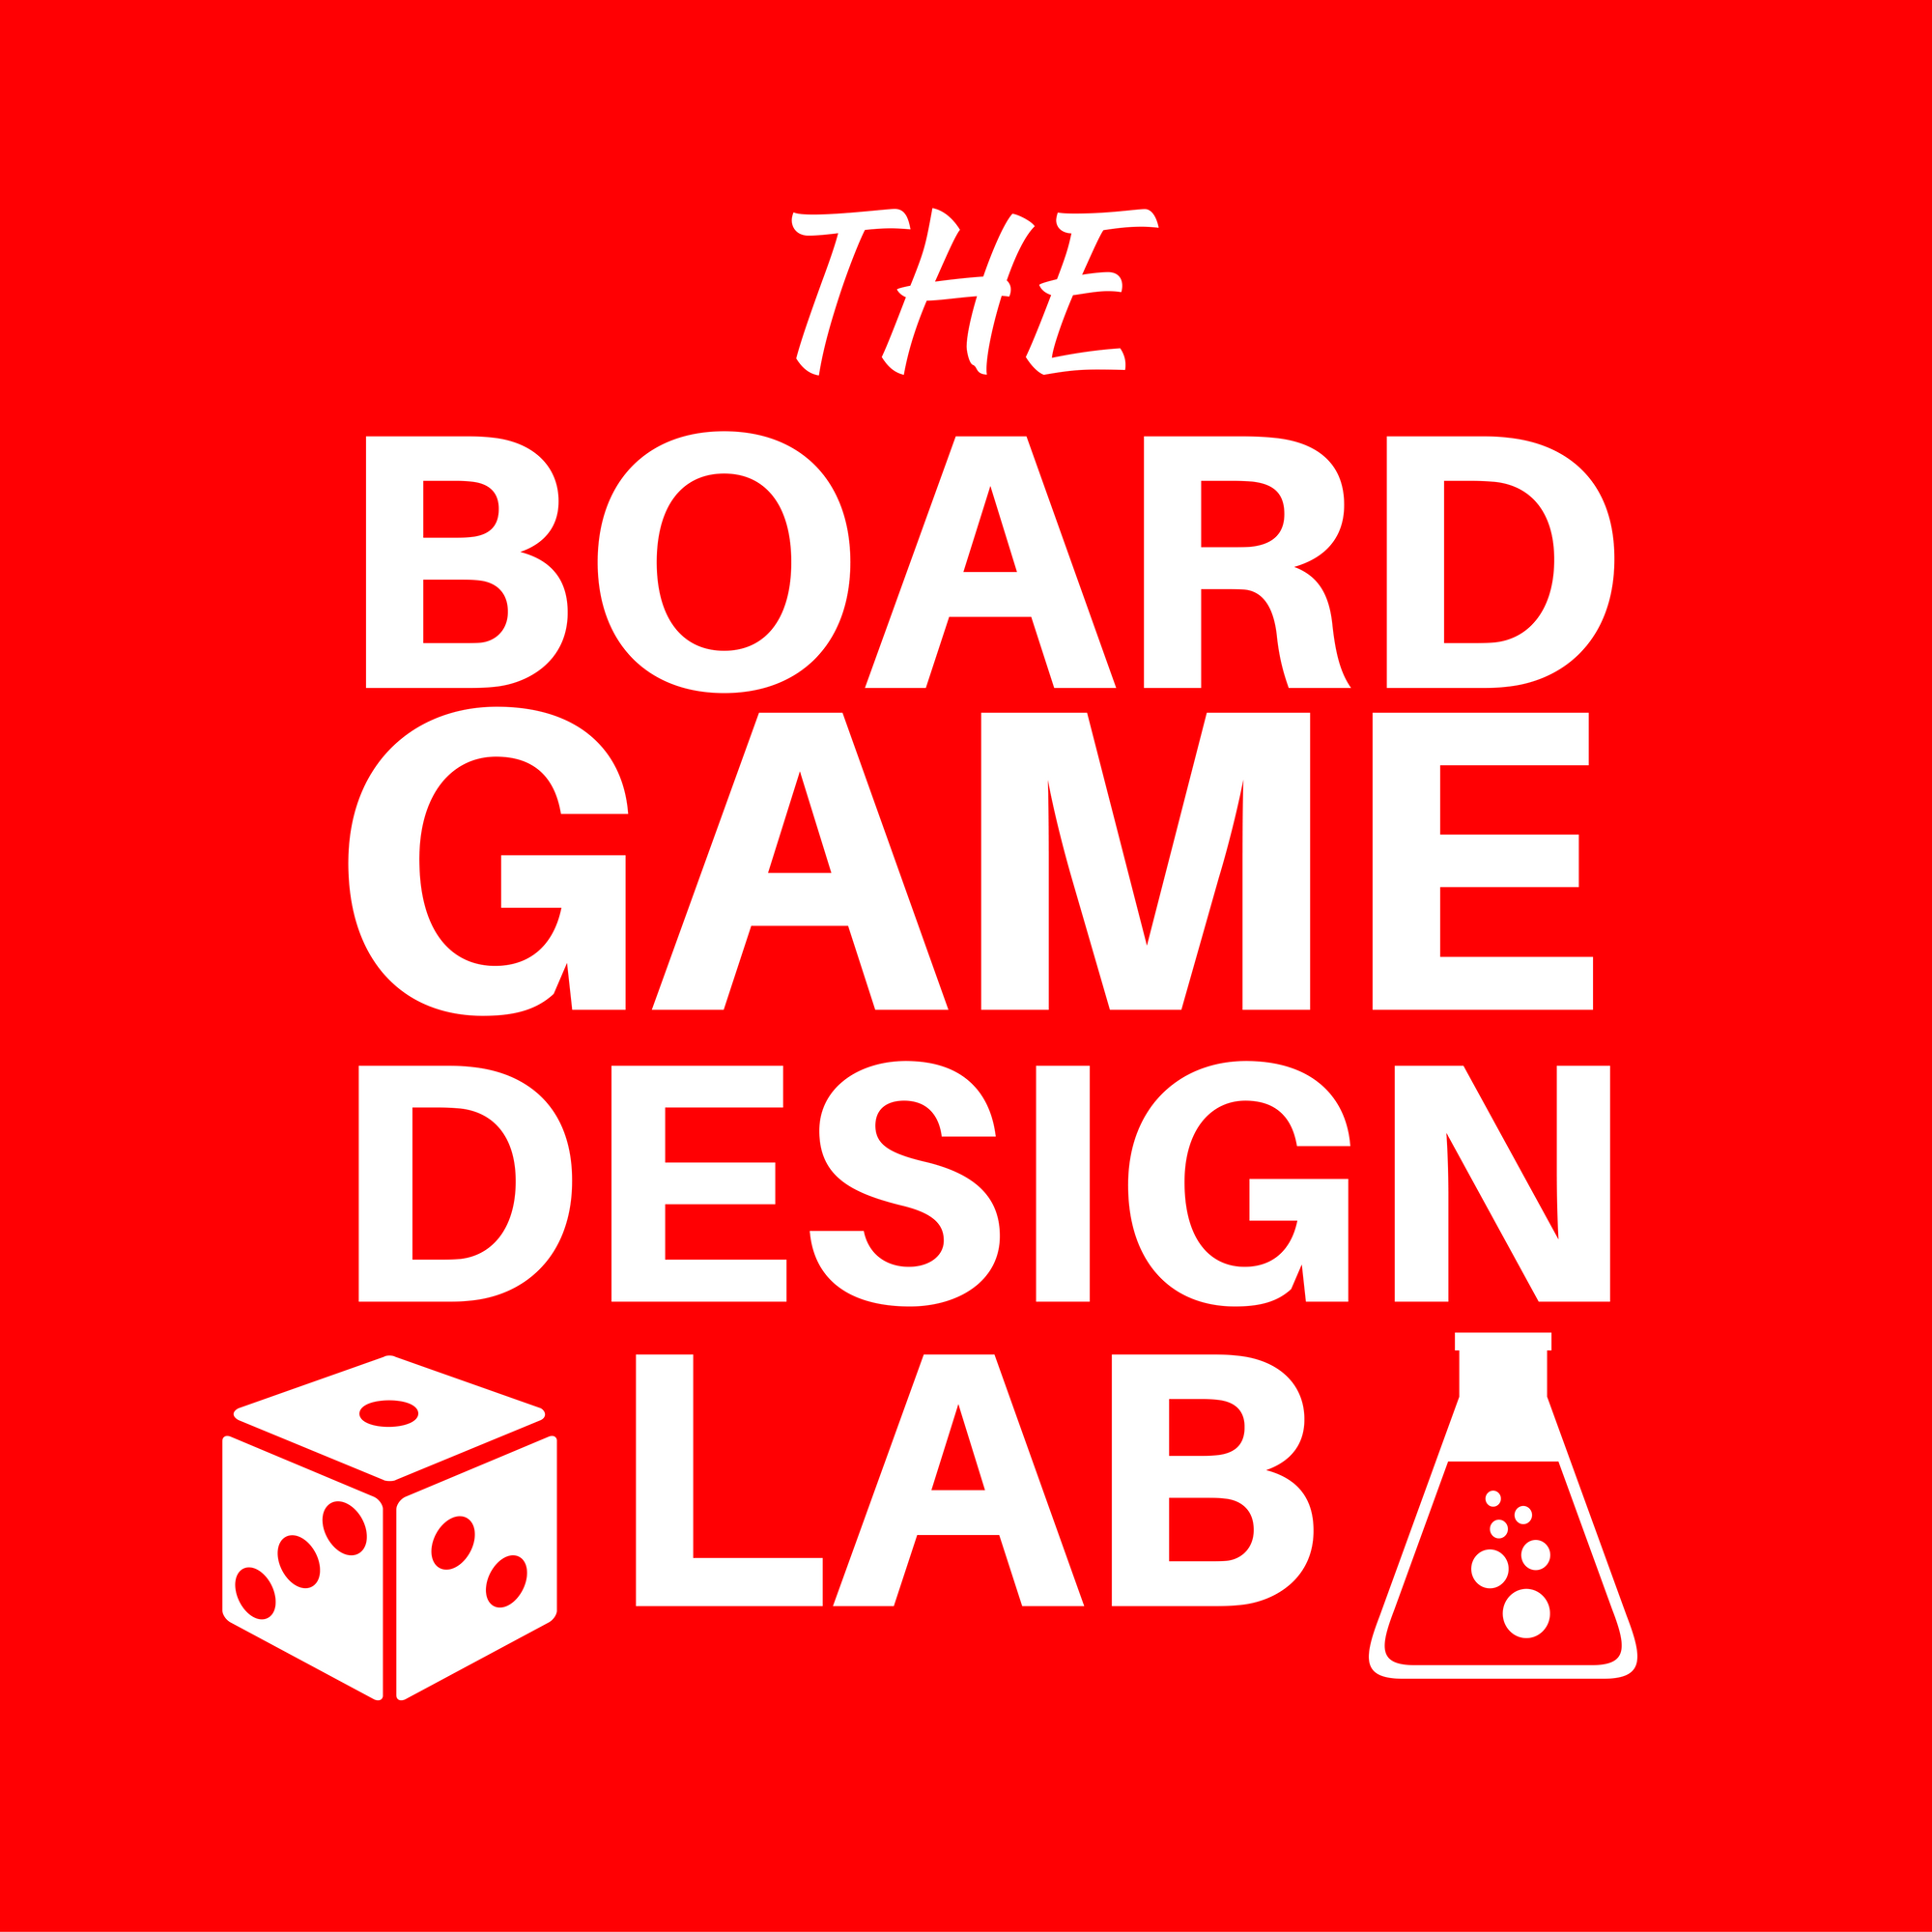 board game design lab helping you design great games people love